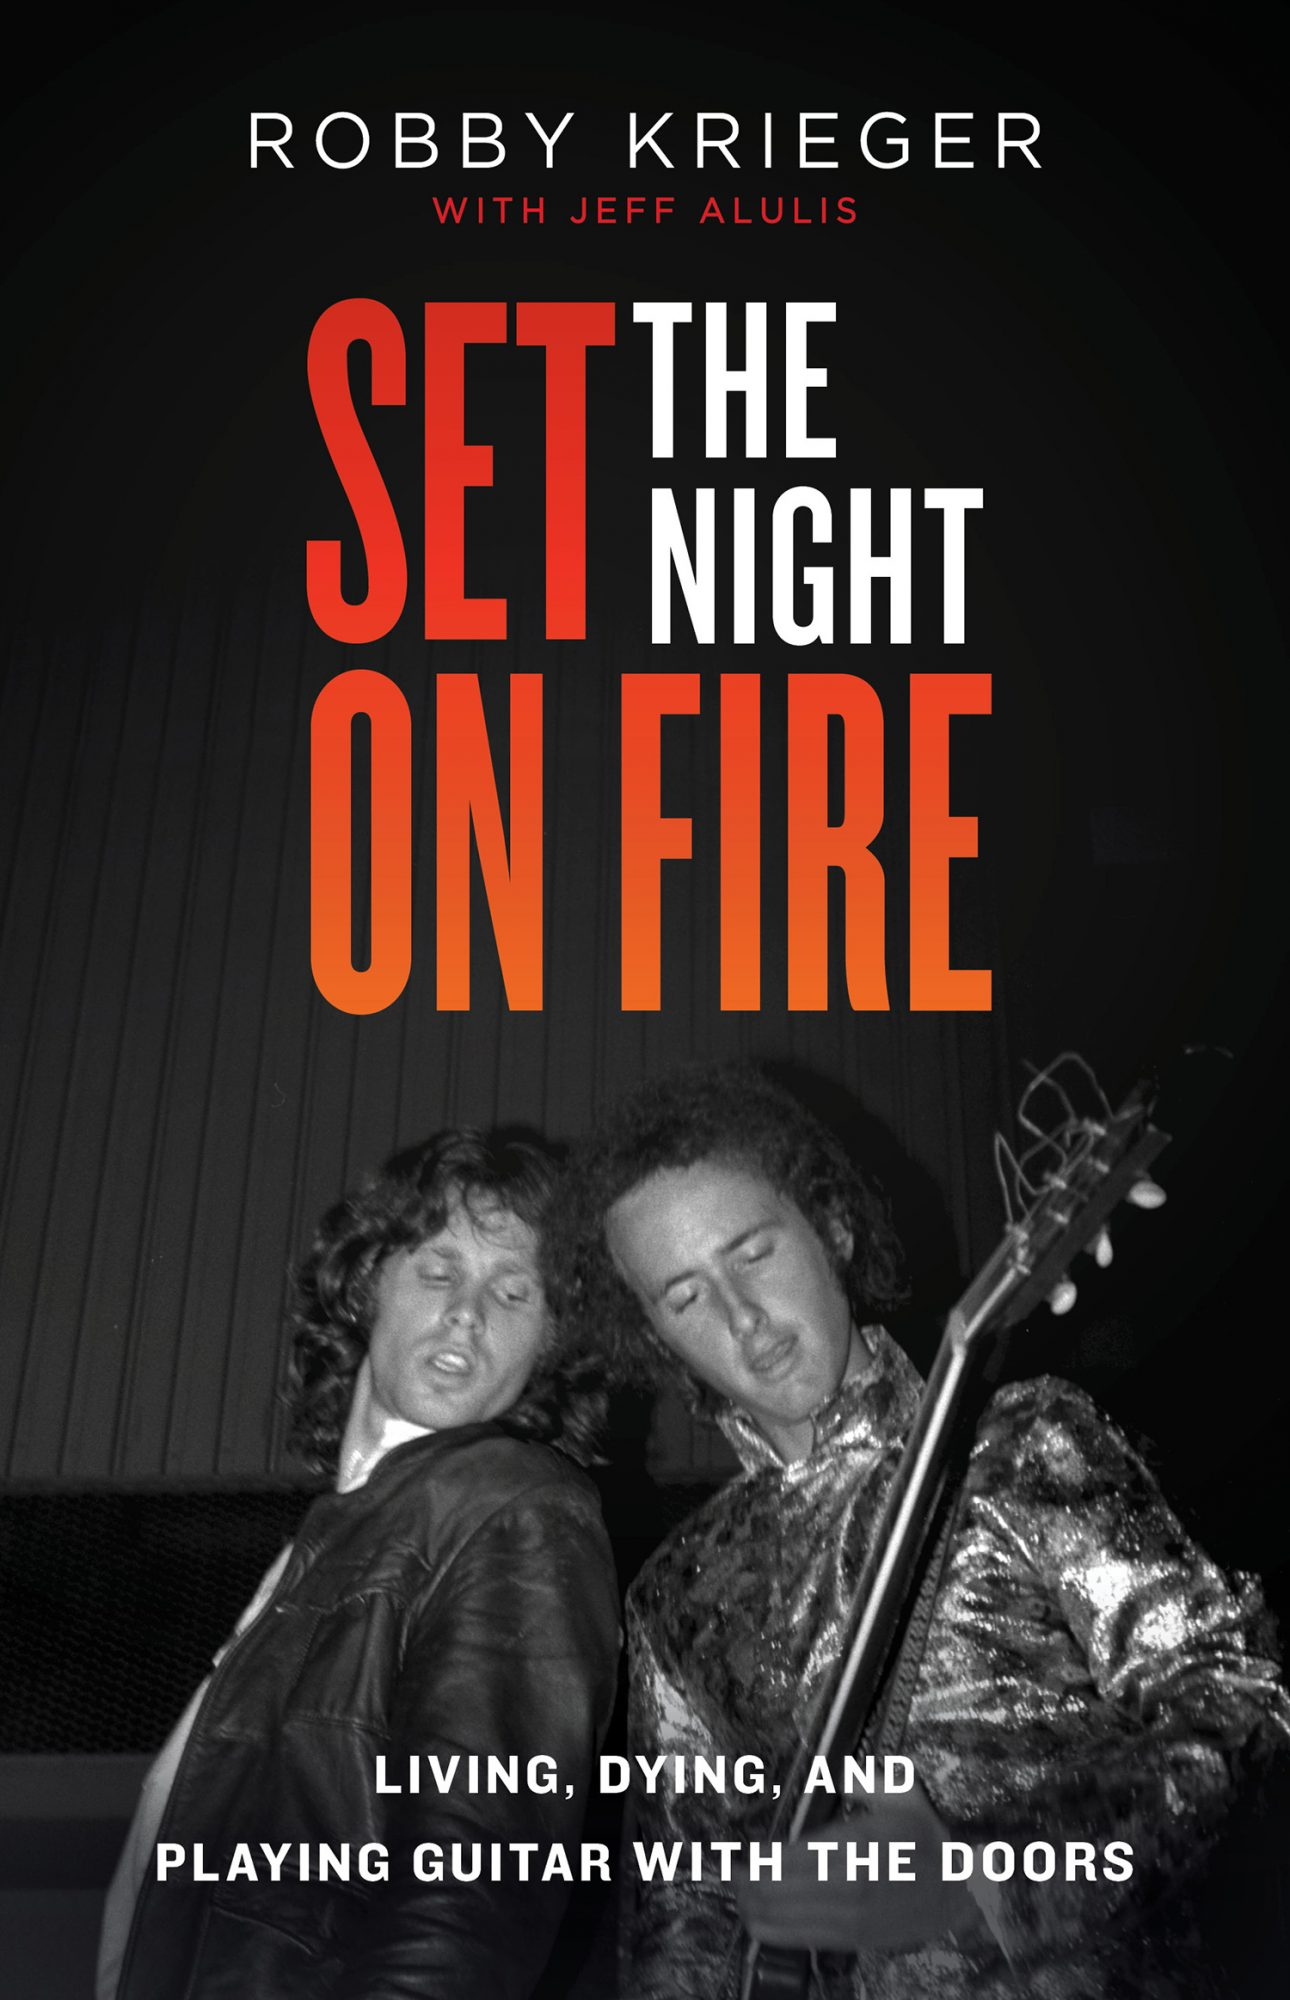 Set the Night on Fire Living, Dying, and Playing Guitar With the Doors by Robby Krieger With Jeff Alulis